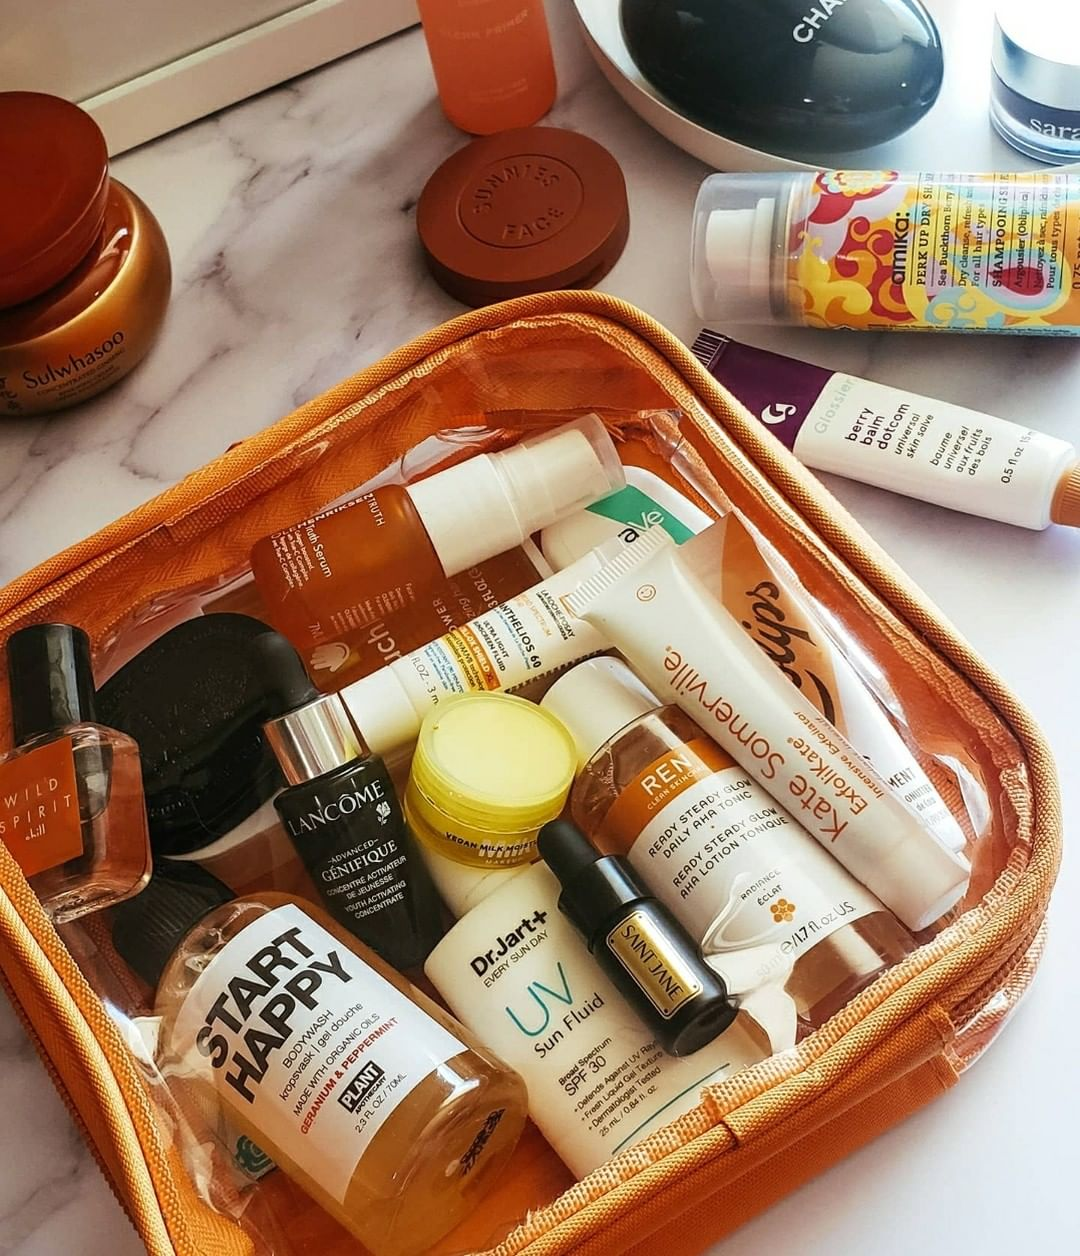 Travel size bottles packed in an orange TSA Approved Toiletry Bag